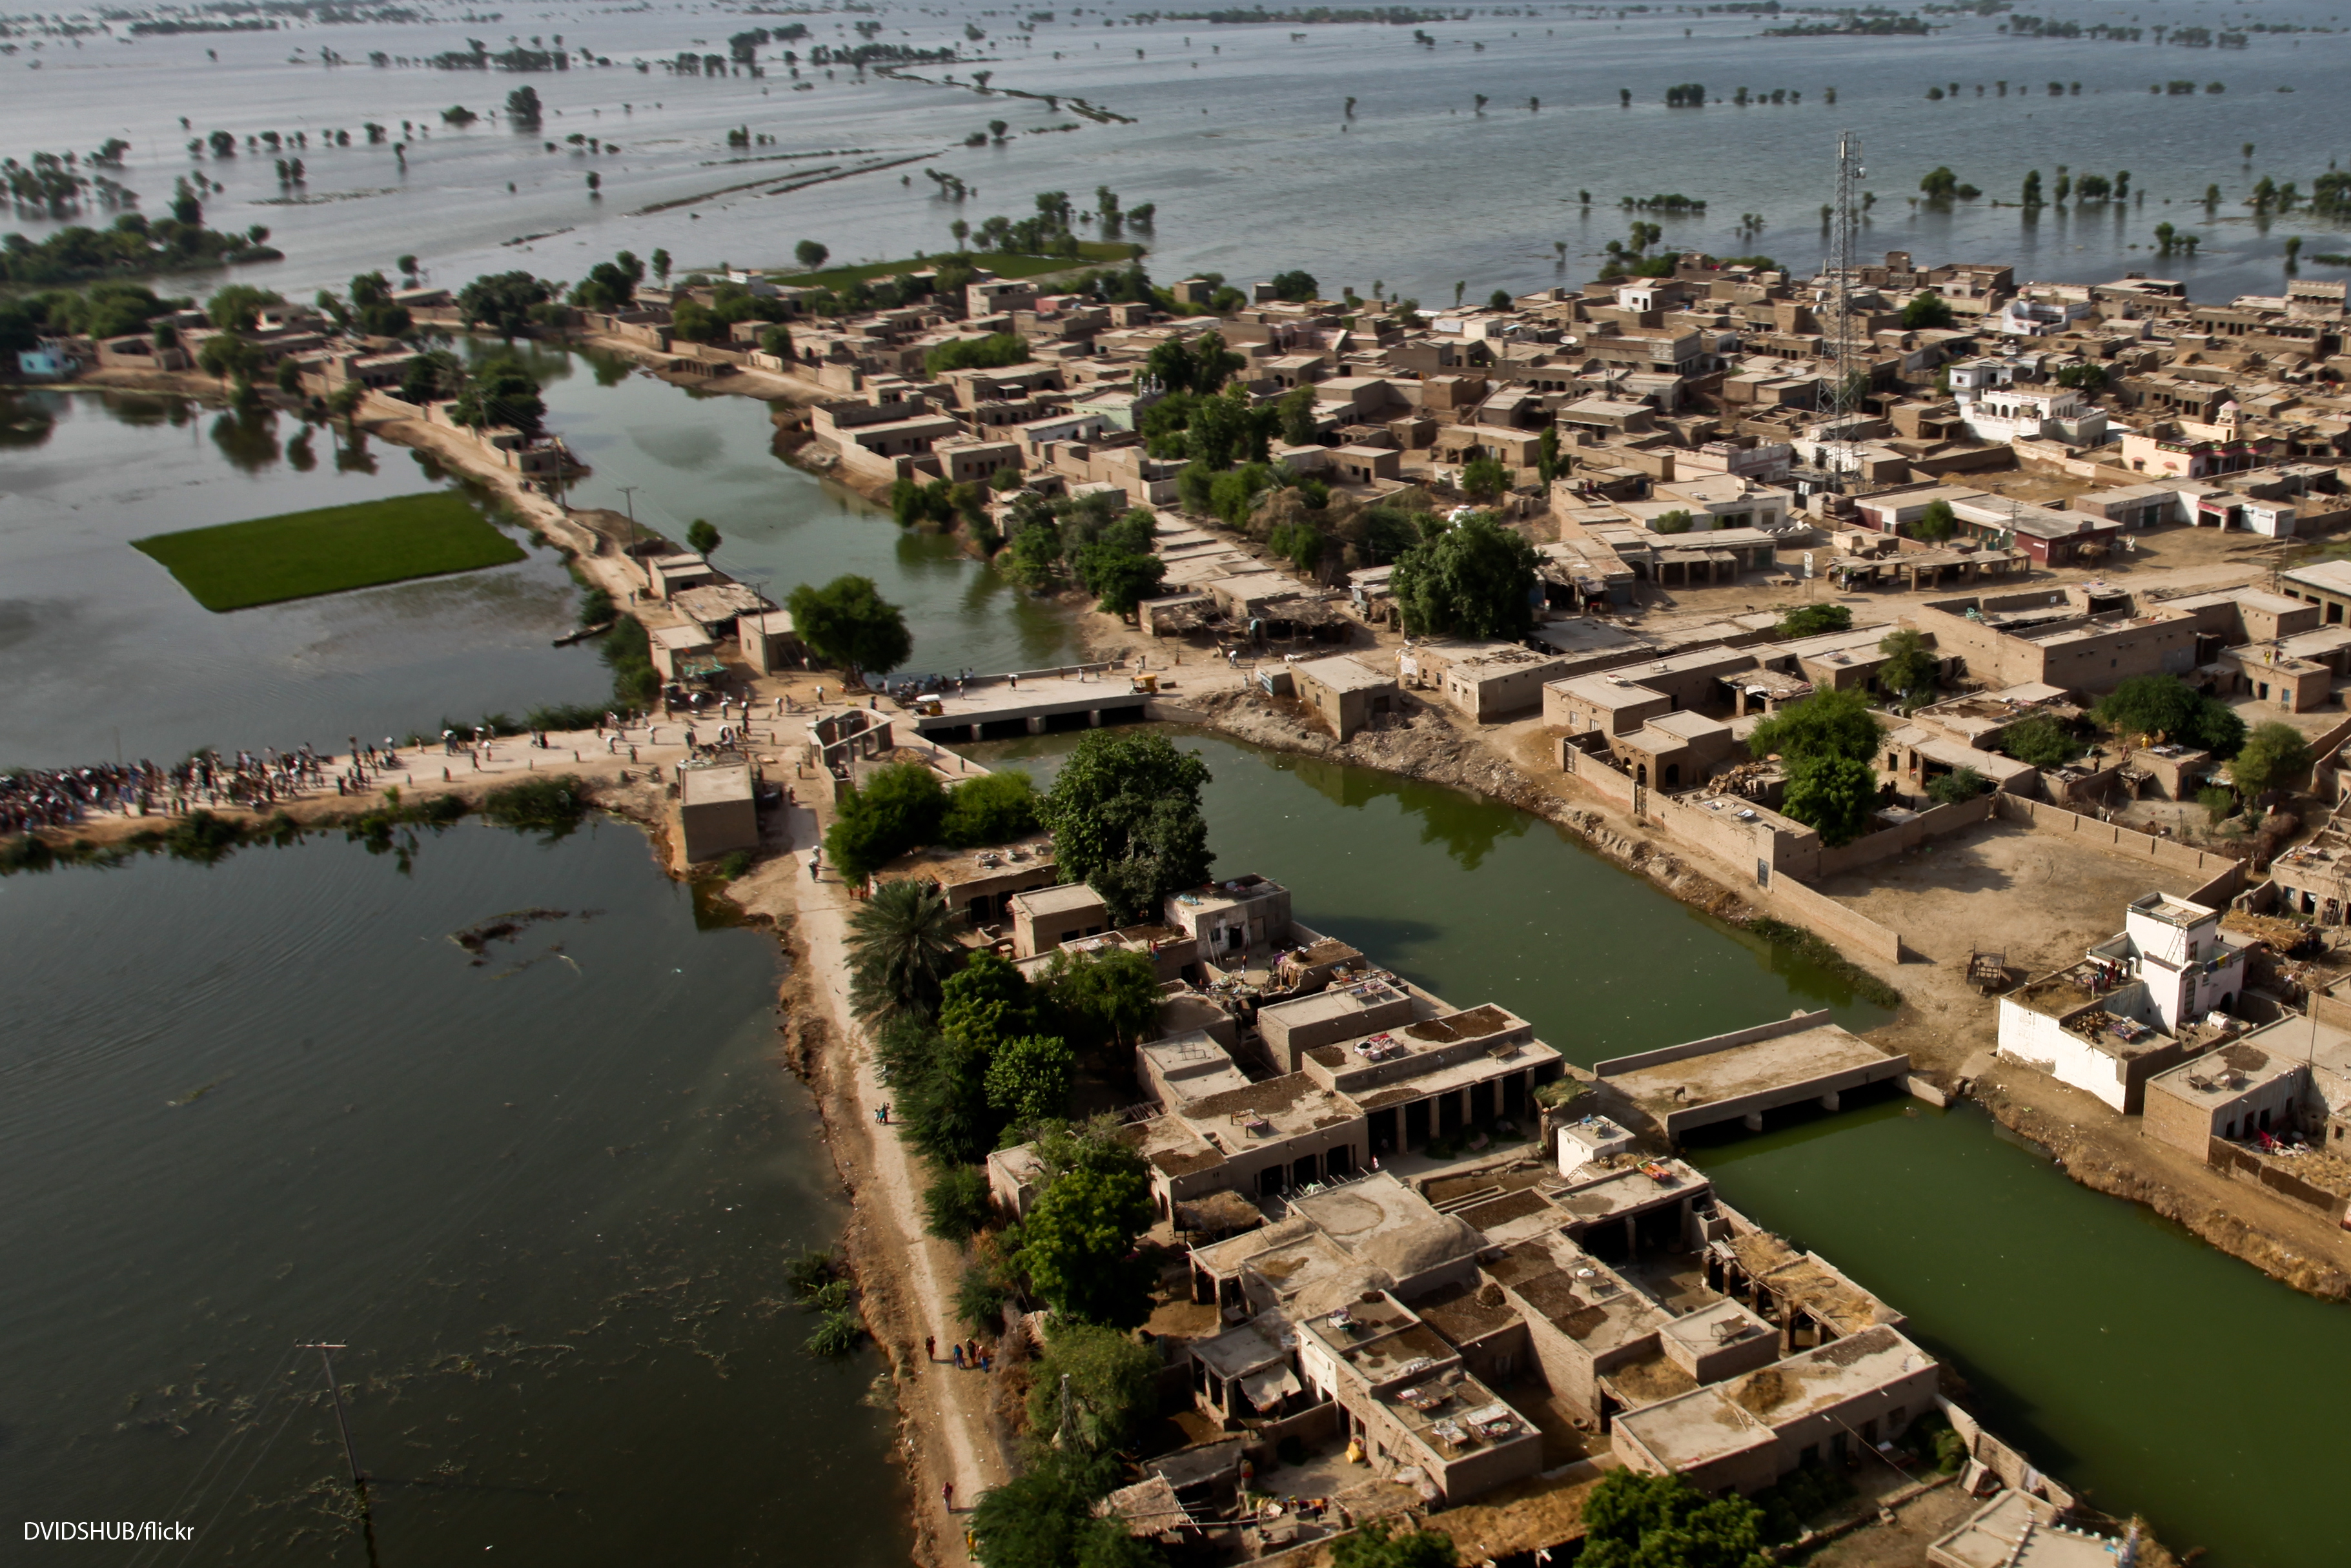 Is Pakistan at risk of more Natural Disasters? Why?